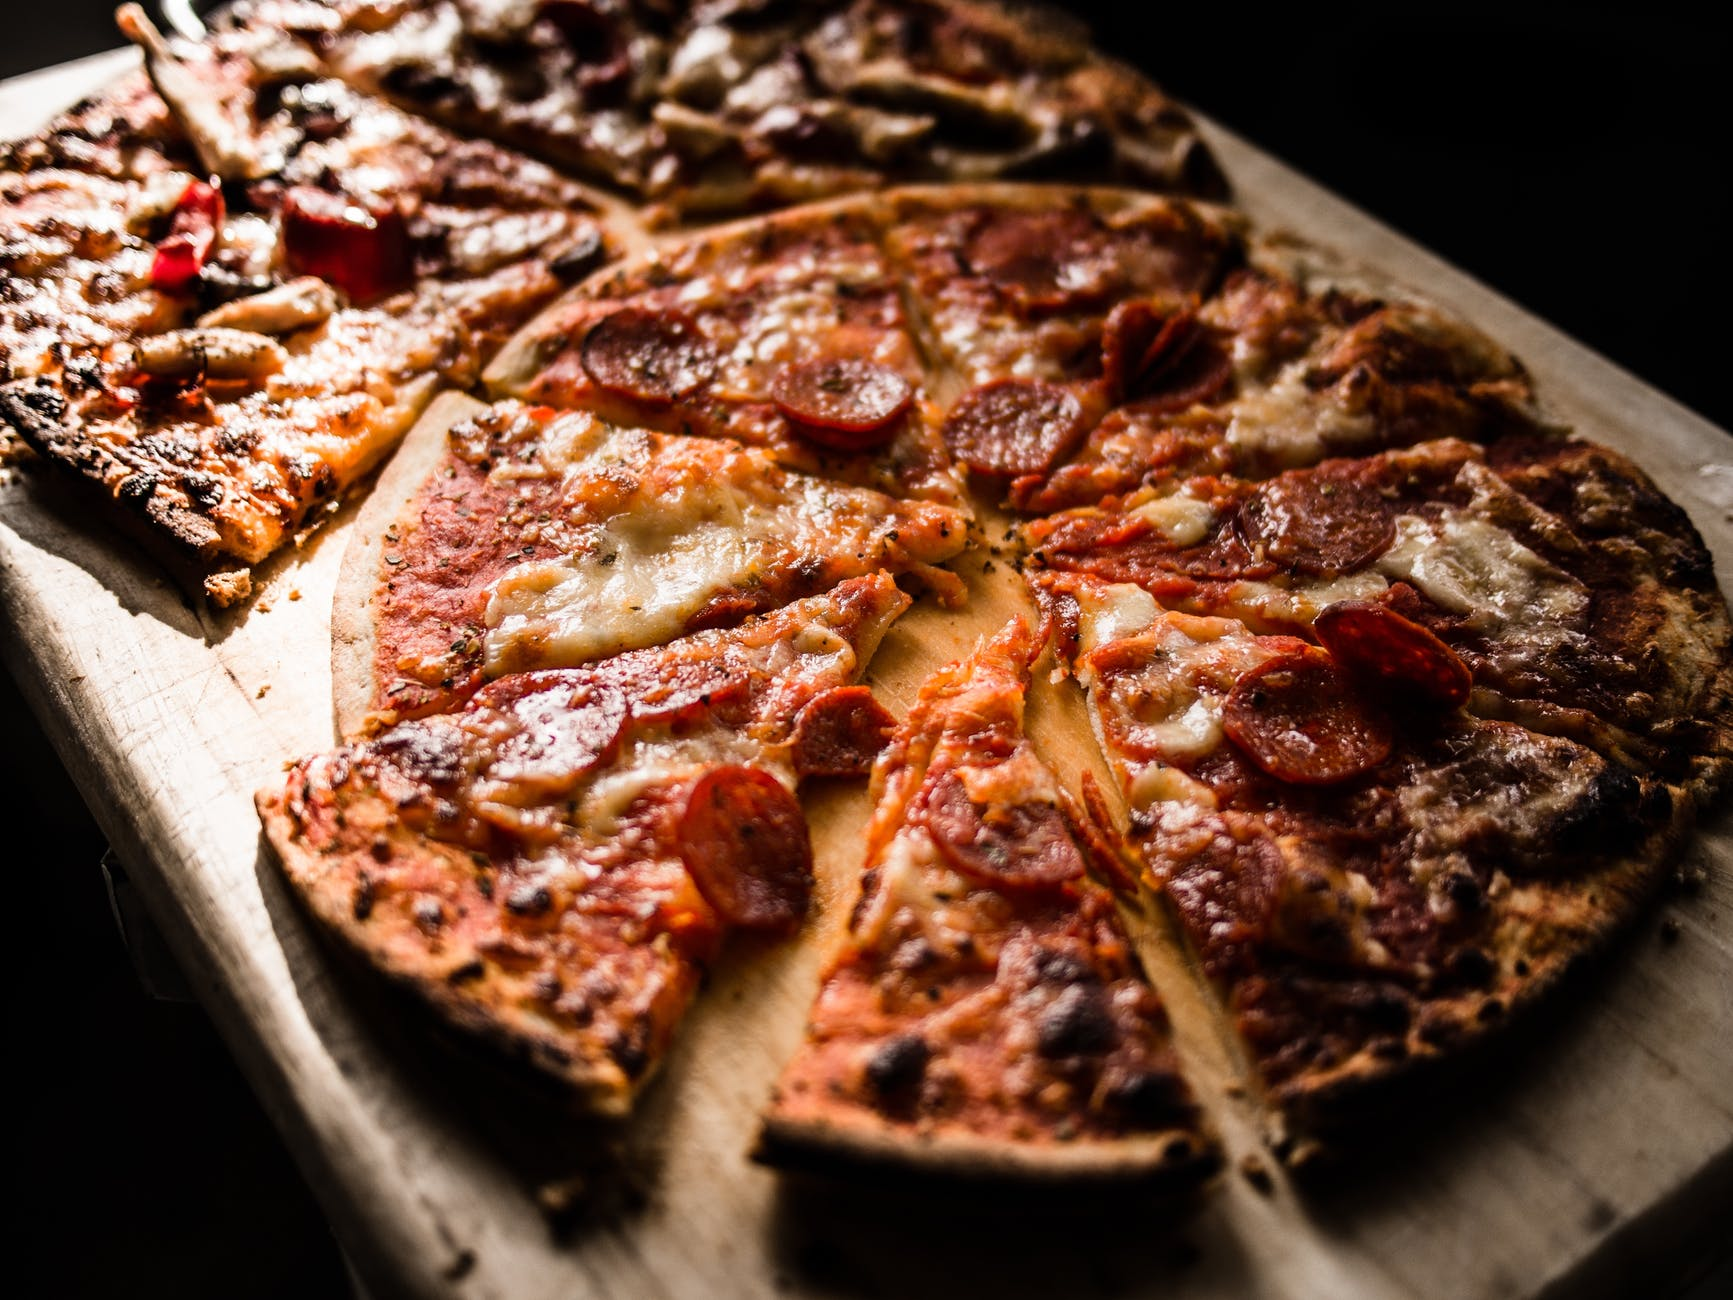 Two pepperoni pizzas on a wooden plate